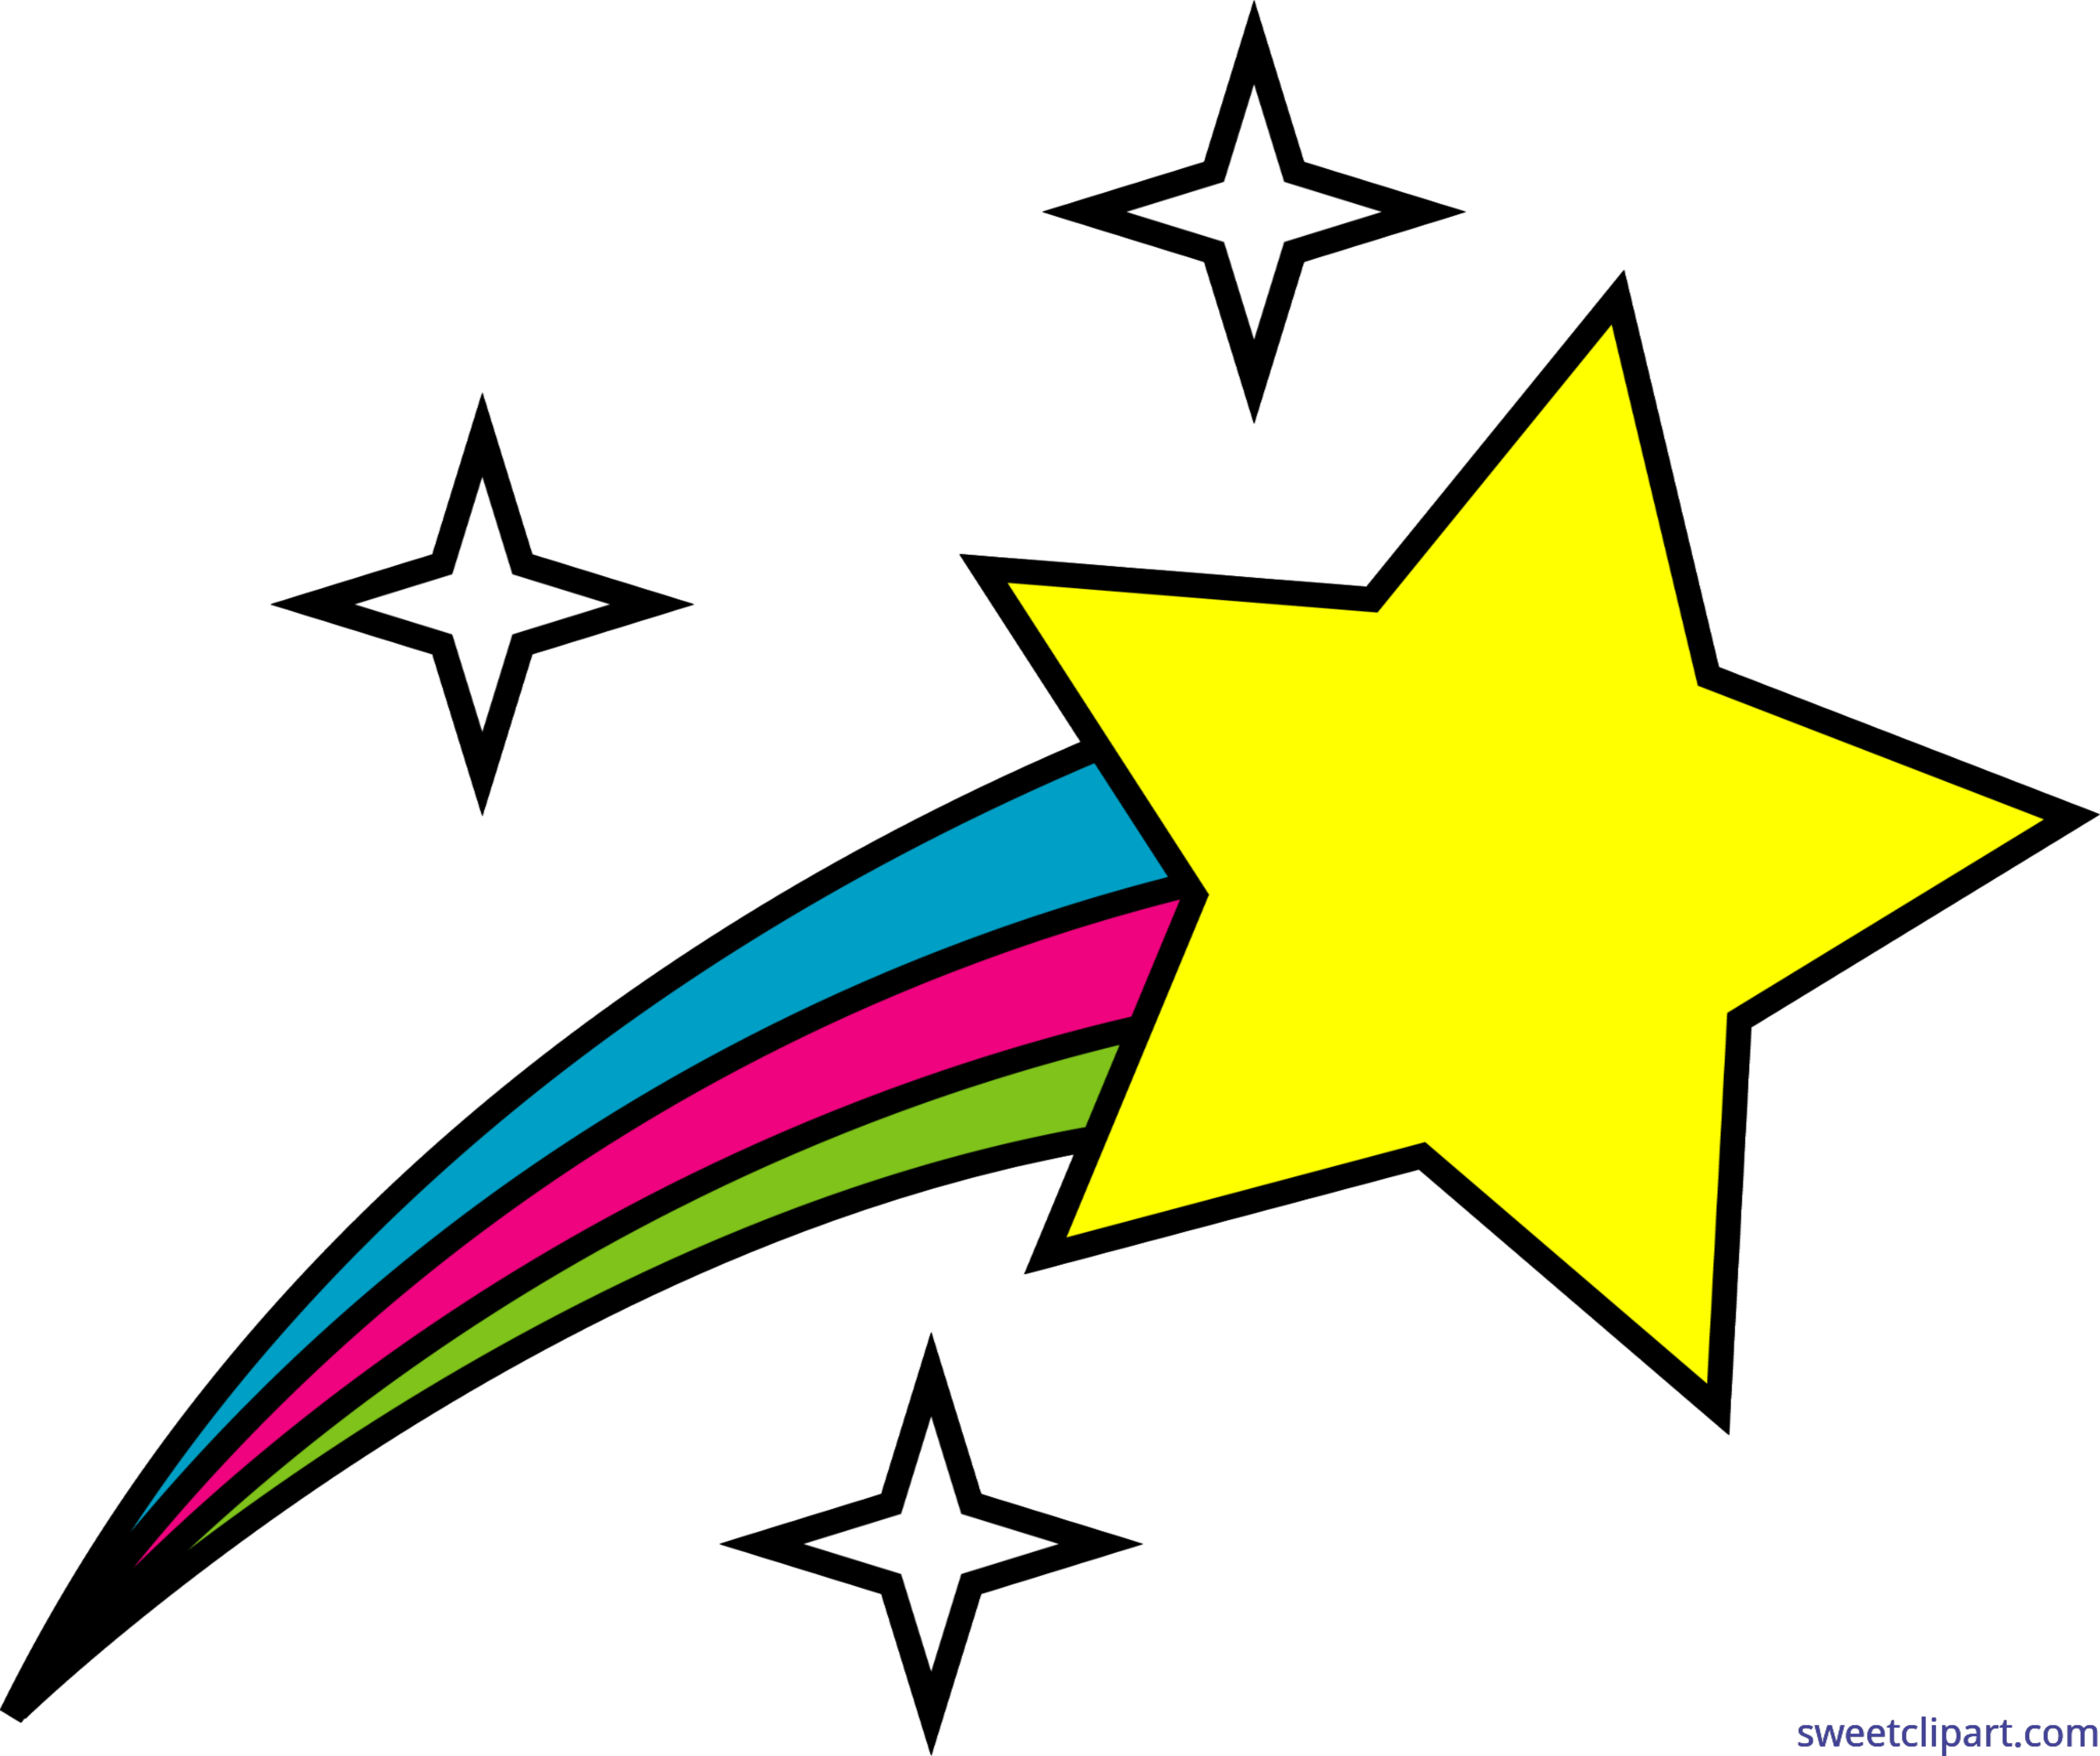 Star symbol clipart 4 » Clipart Station.